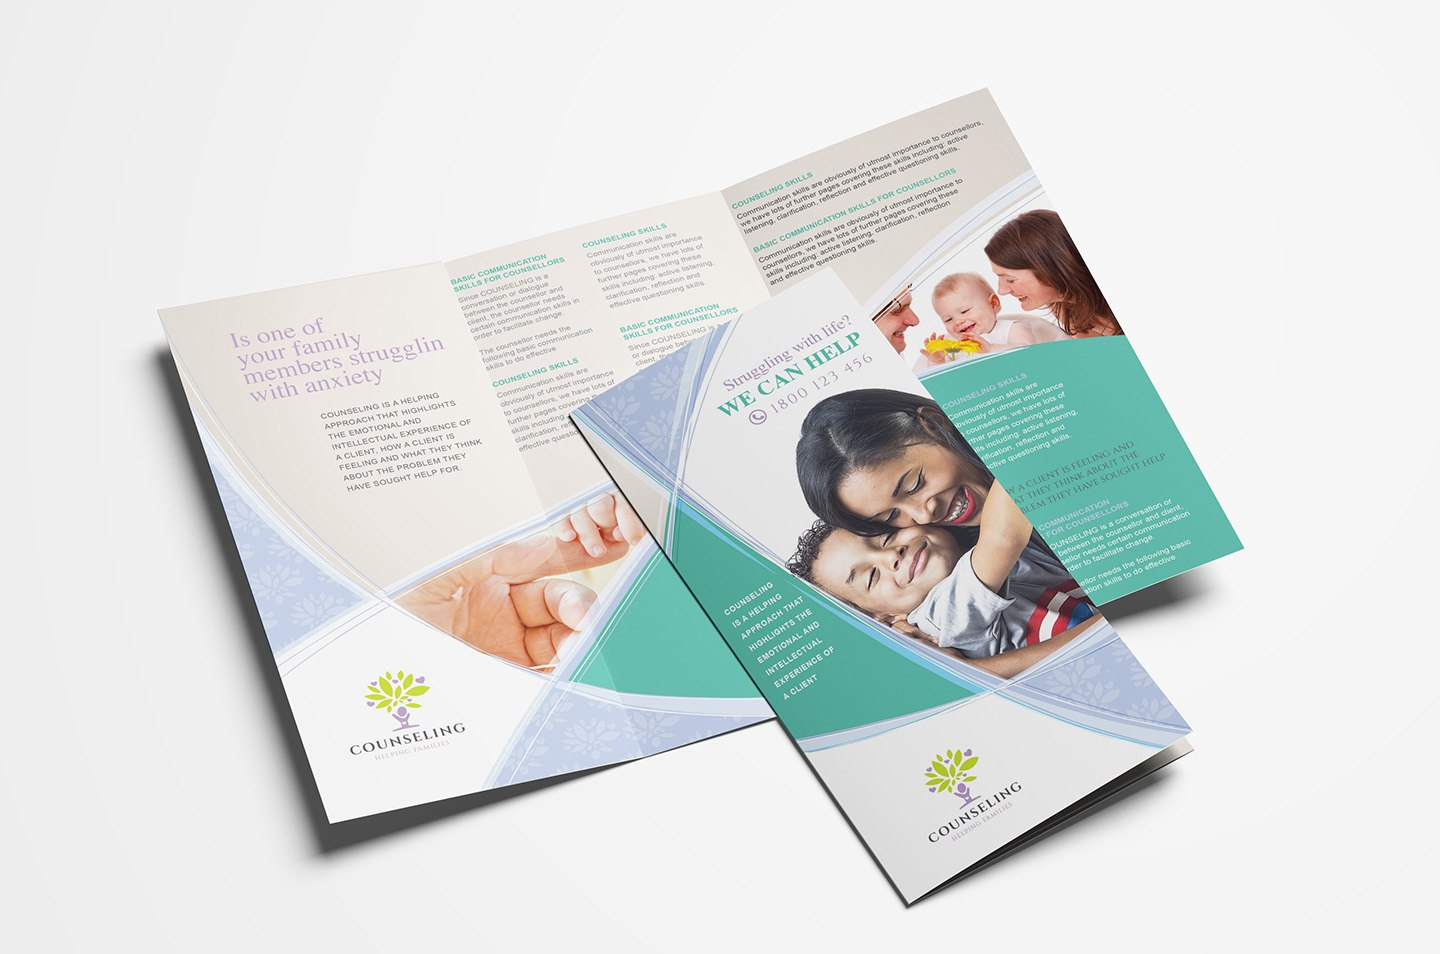 Counselling Service Trifold Brochure Template In Psd Ai  Vector In Training Brochure Template